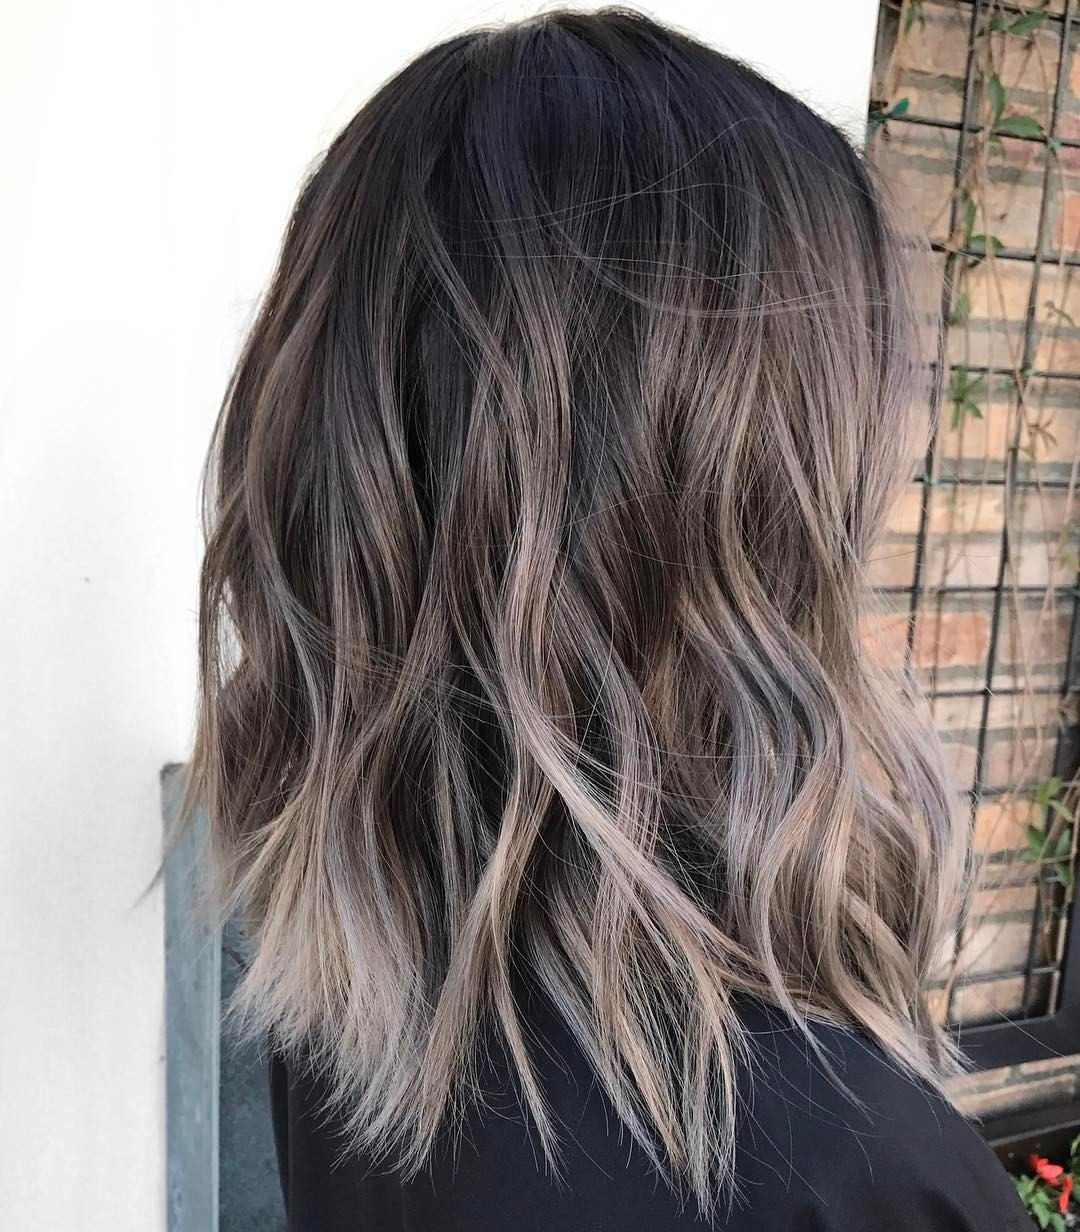 Pin By Mia Kendrick On Hairstyles Hair Lengths Brown